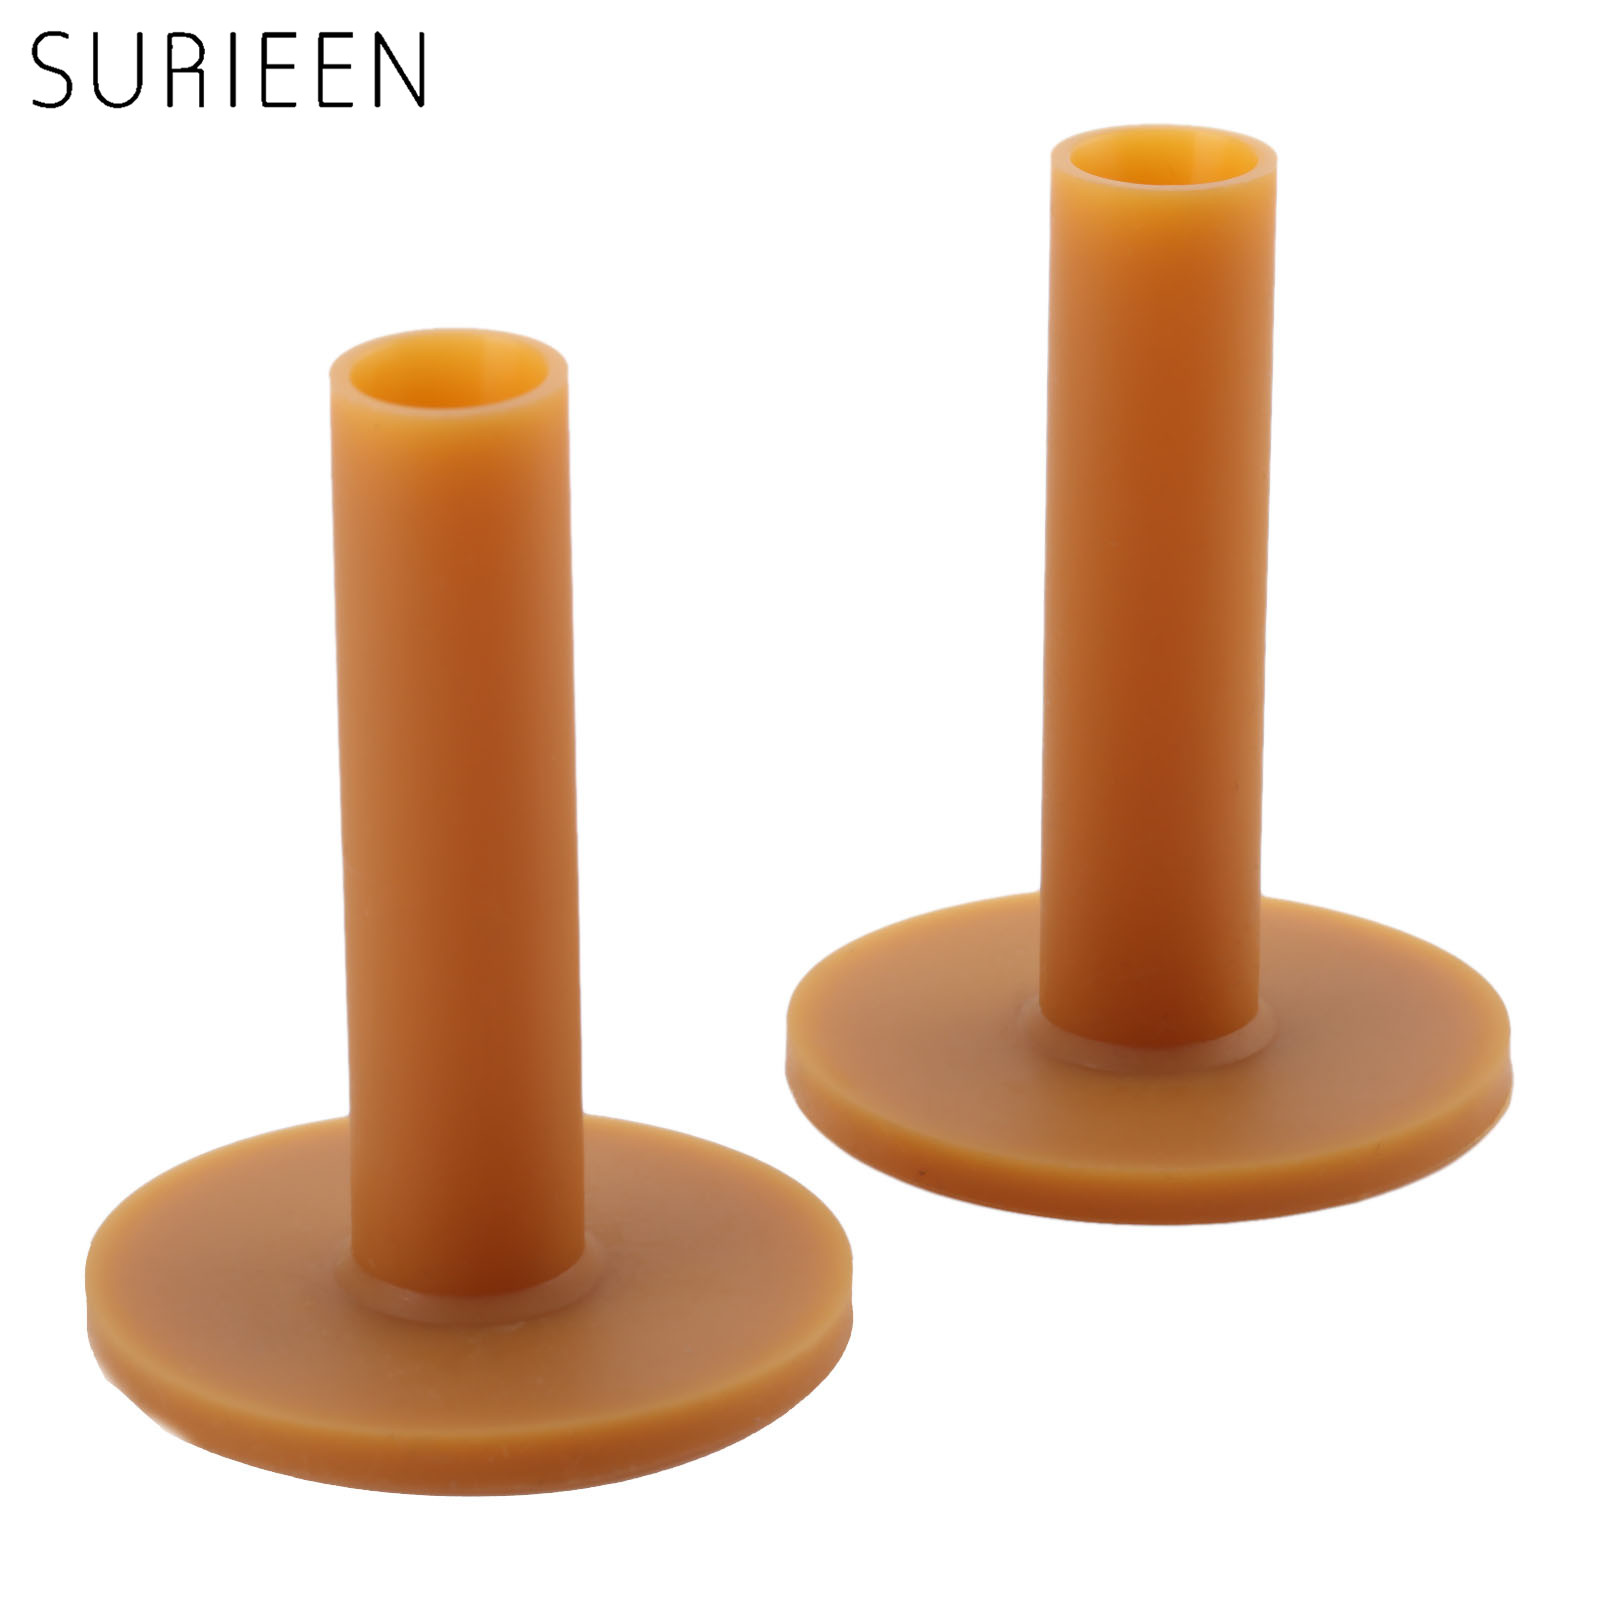 SURIEEN 1Pc Rubber 70mm Golf Tees Friction Hold Driving Range Practice Golf Ball Holder Trainer Training Tool Golfer Accessories